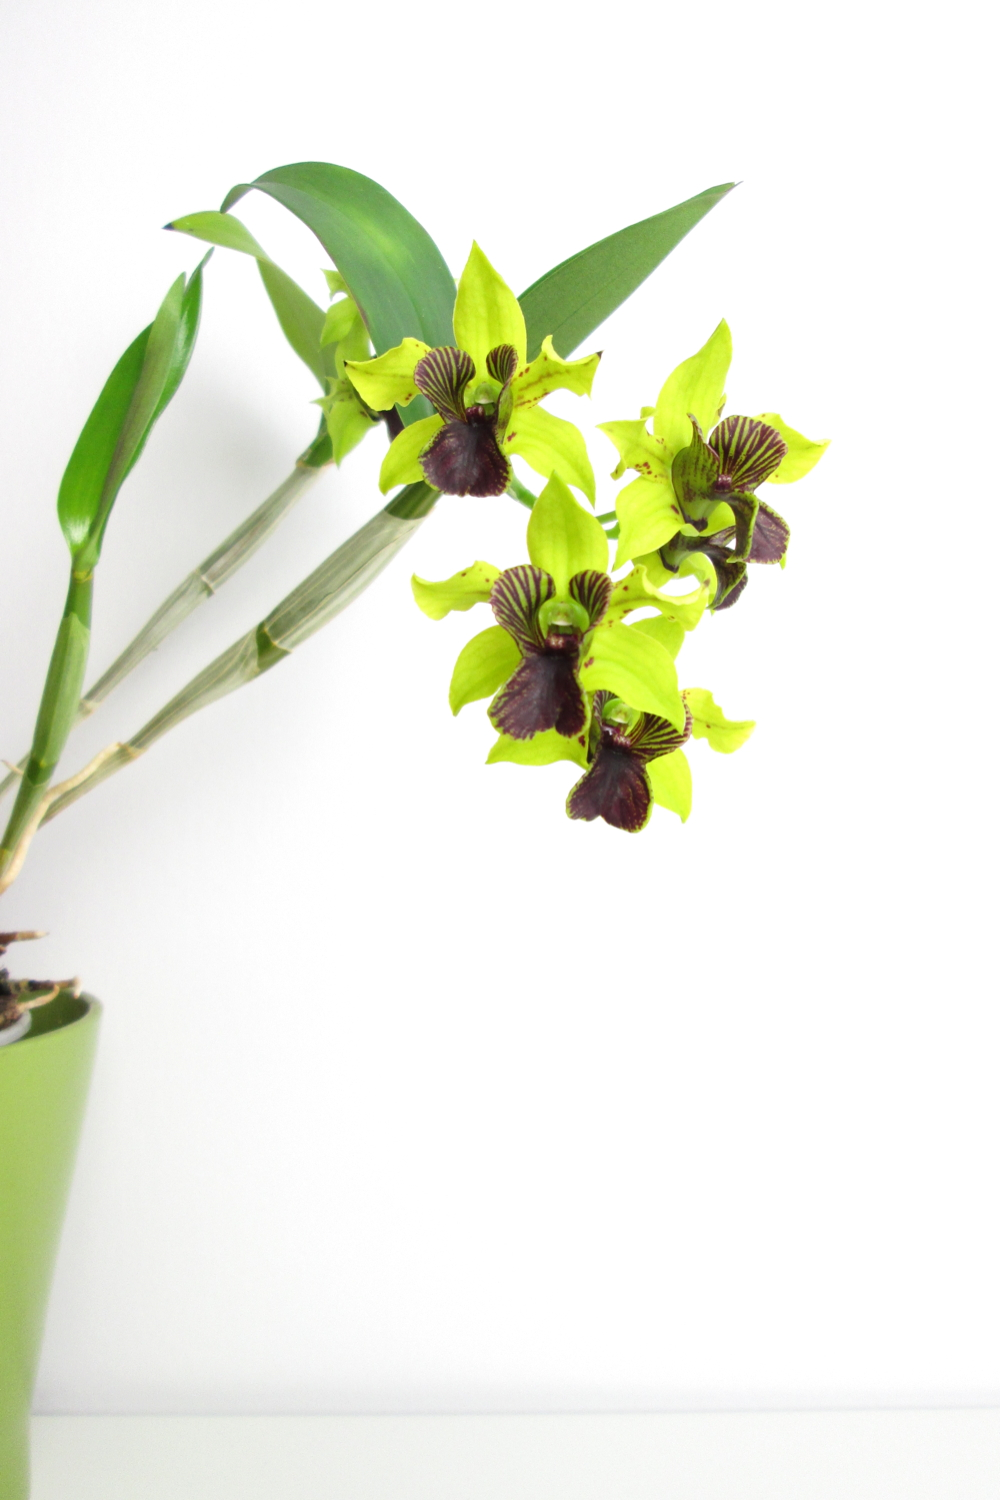 Potted green and purple orchid: Dendrobium 'Green Flash' in bloom.